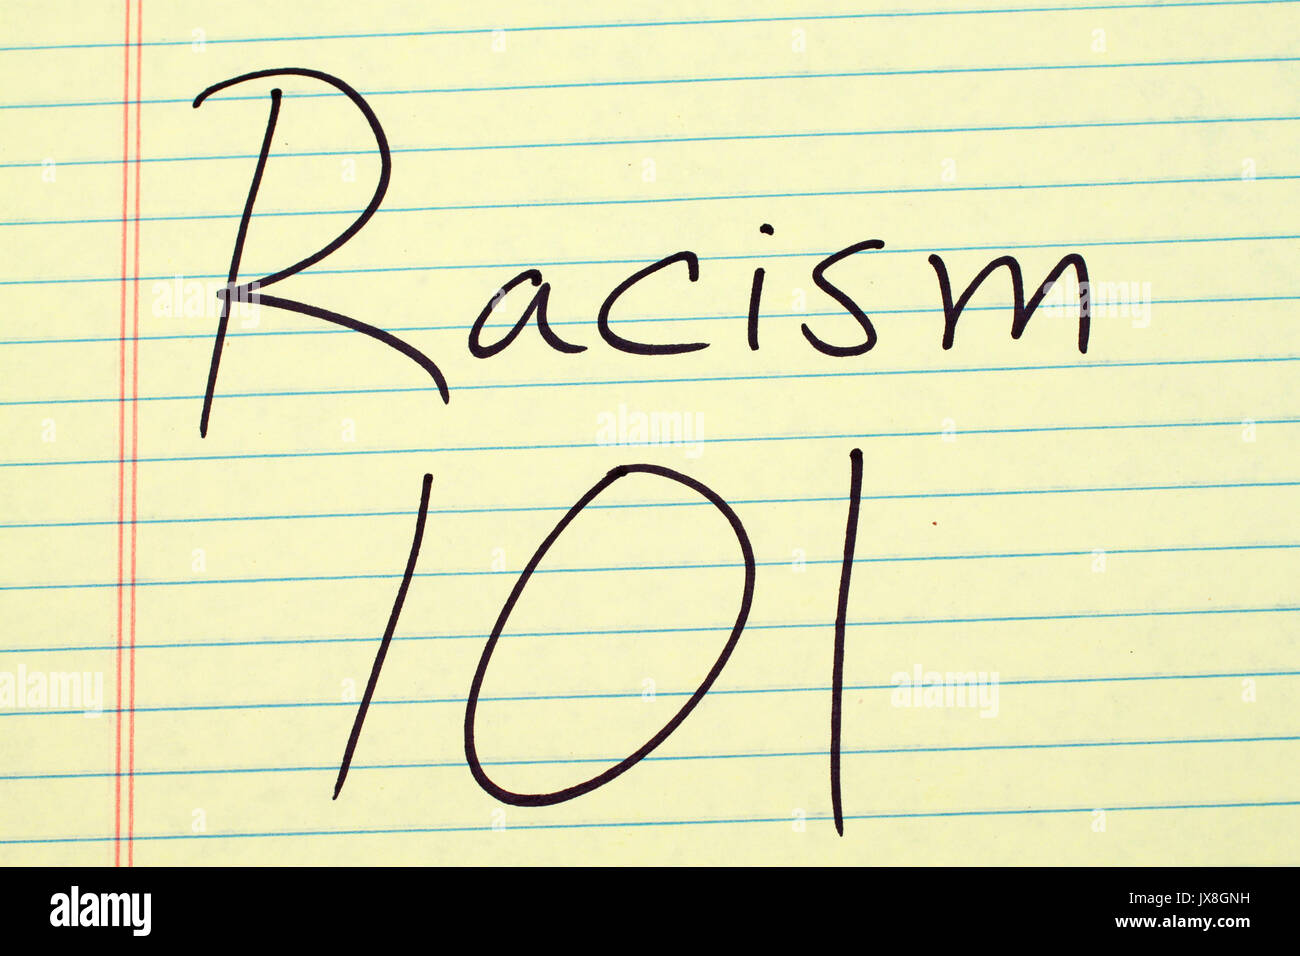 The words 'Racism 101' on a yellow legal pad - Stock Image